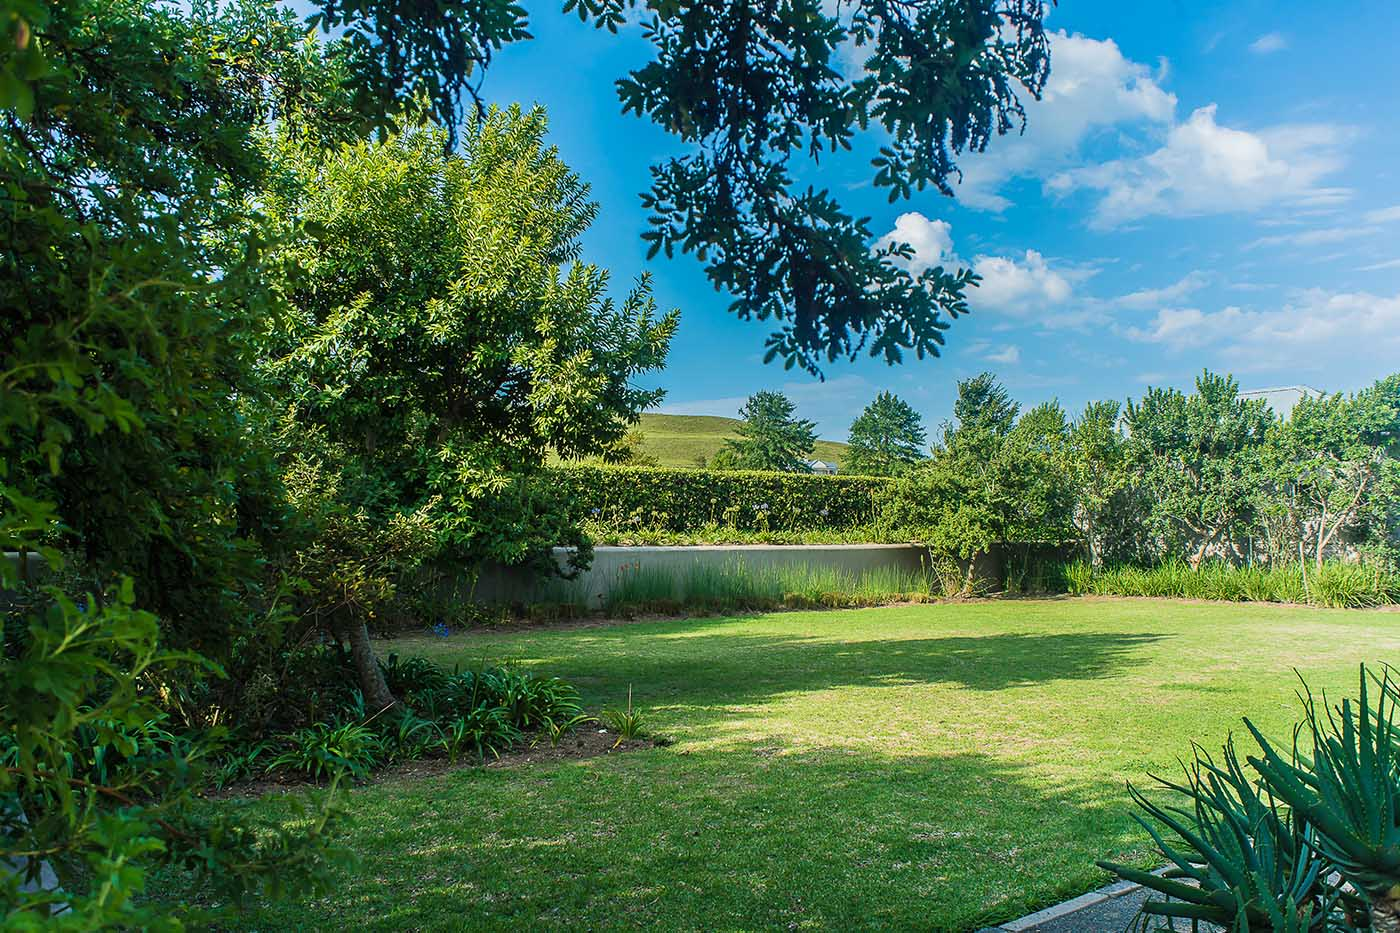 old-tom-morris-cottage-gallery-accommodation-gowrie-housing-development-classic-golf-course-midlands-kzn